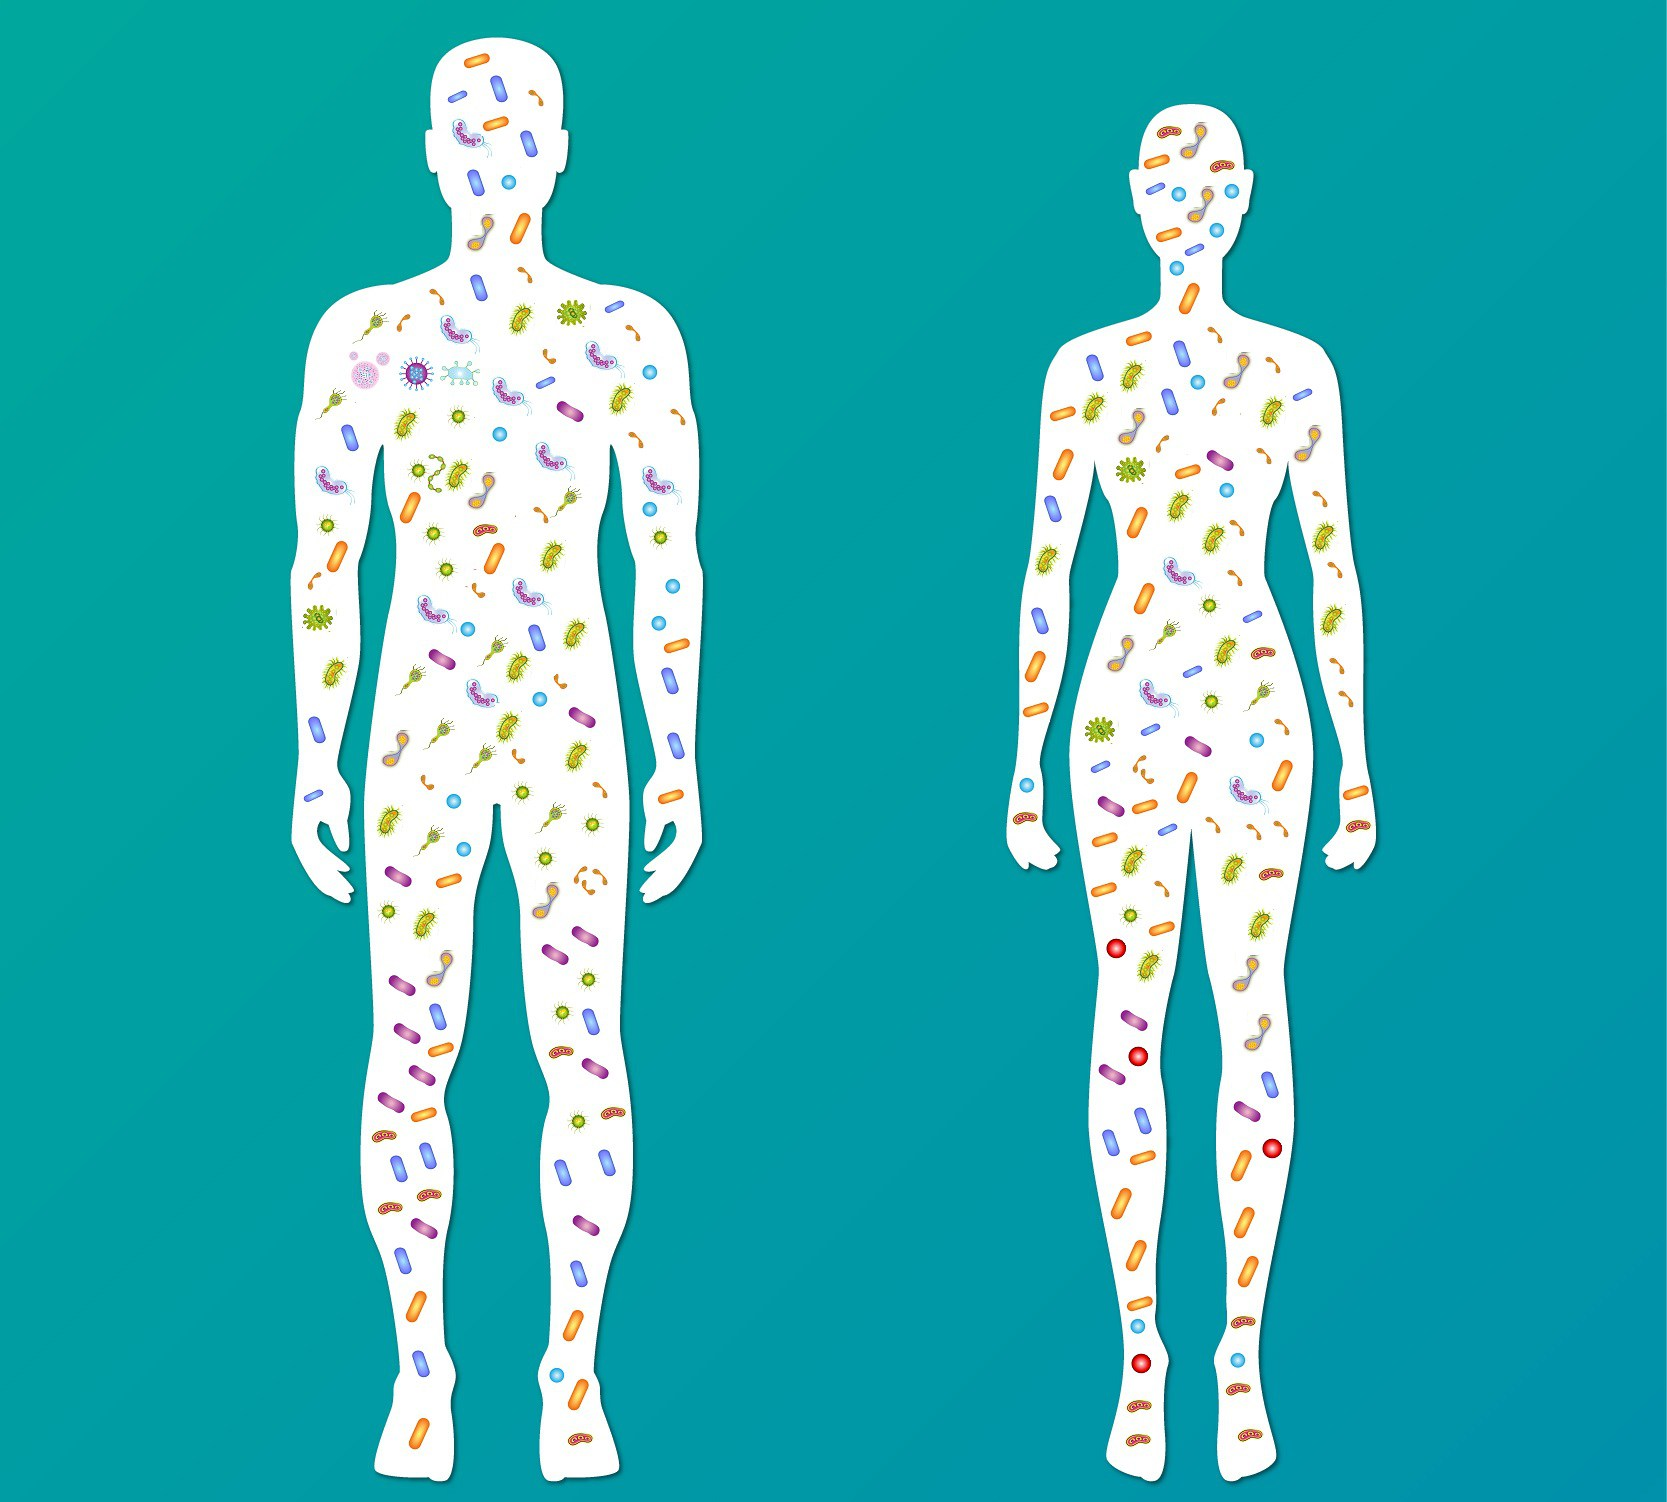 Microbiome graphic